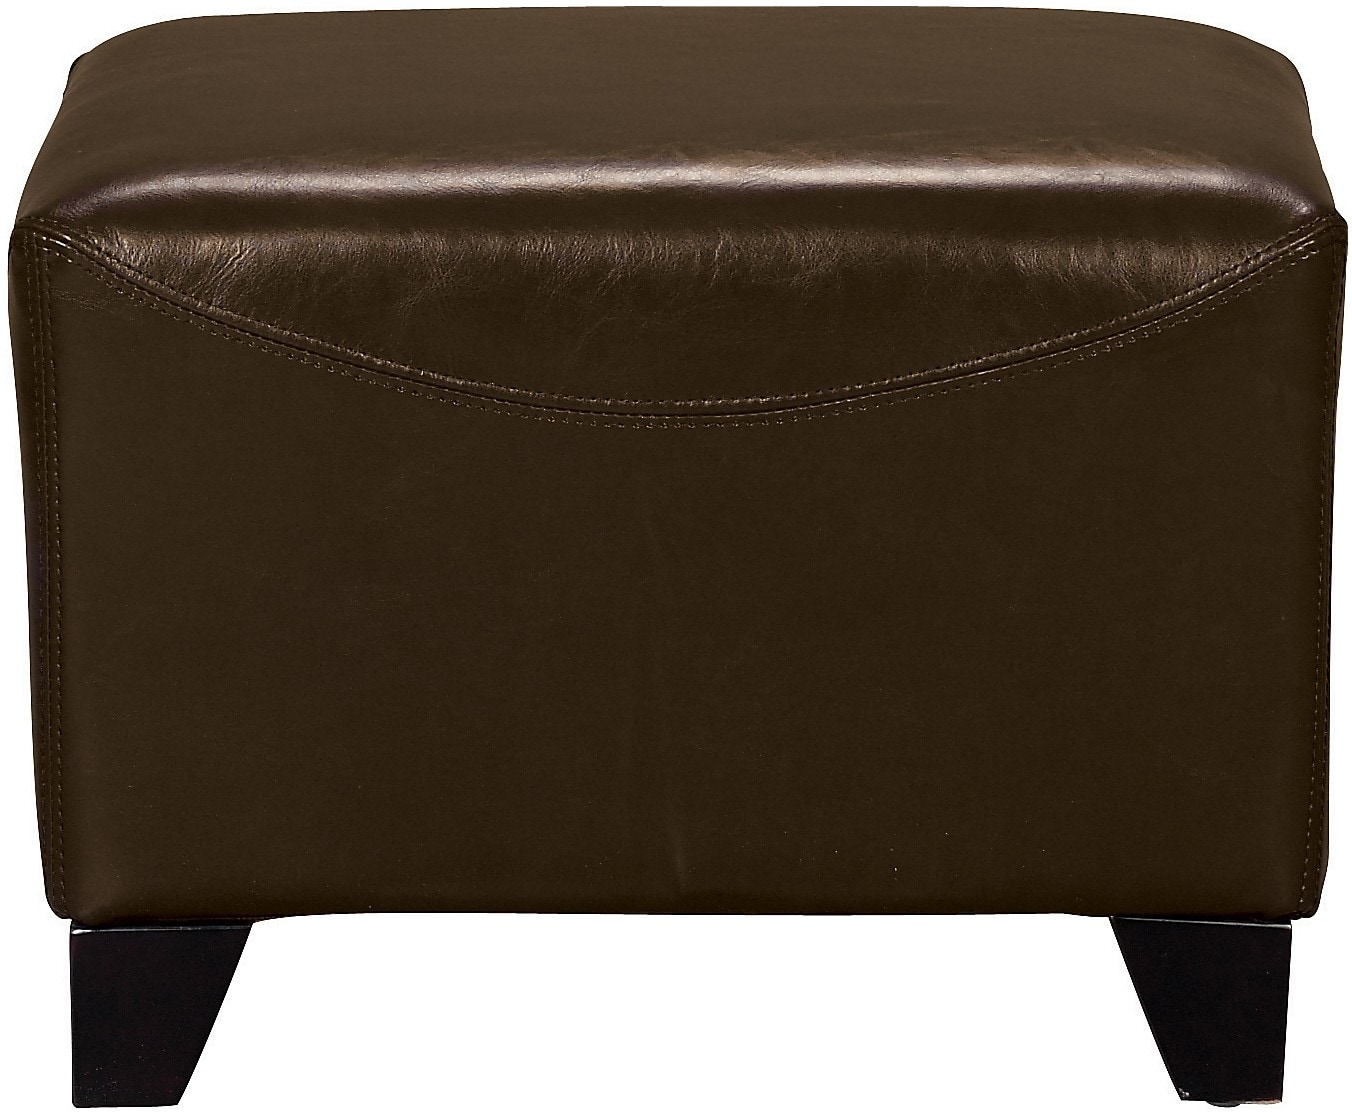 Bonded Leather Ottoman - Brown